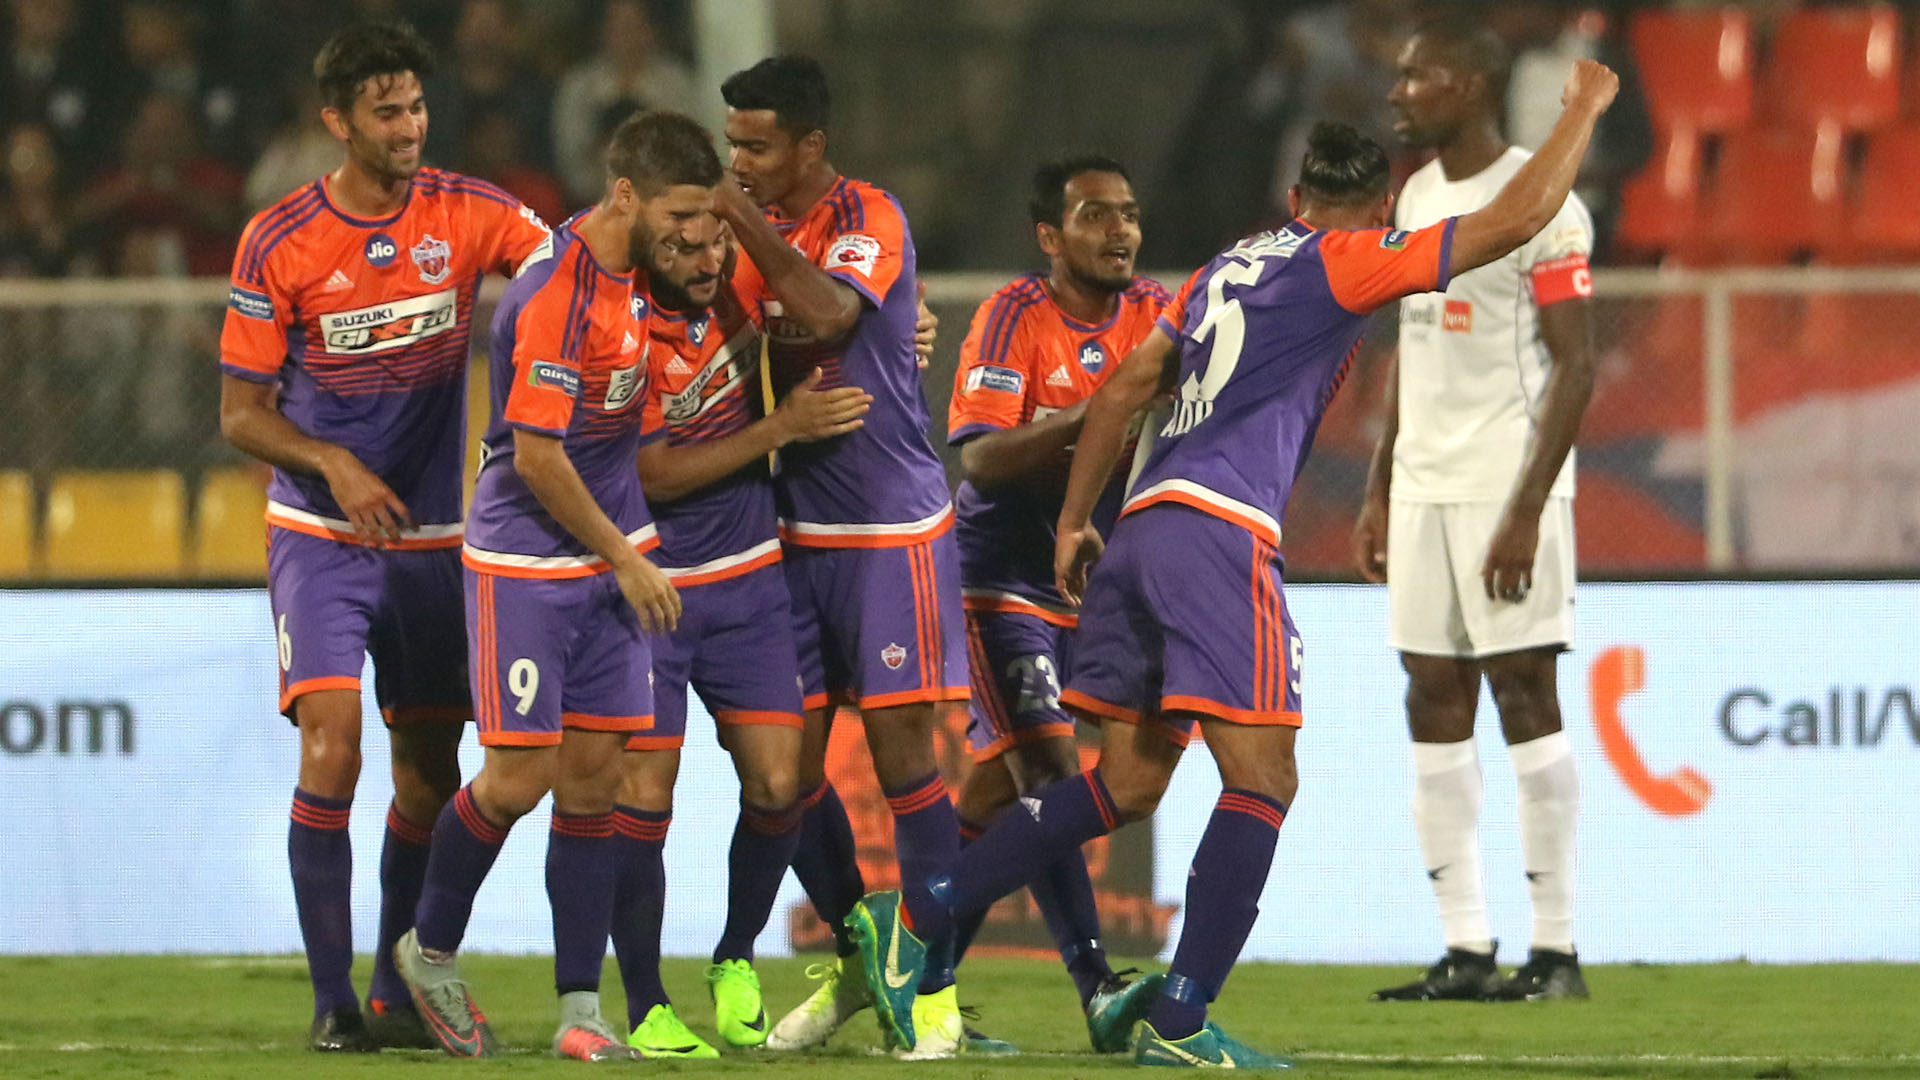 FC Pune City Coach Ranko Popovic Suspended, Fined Rs 5 Lakh